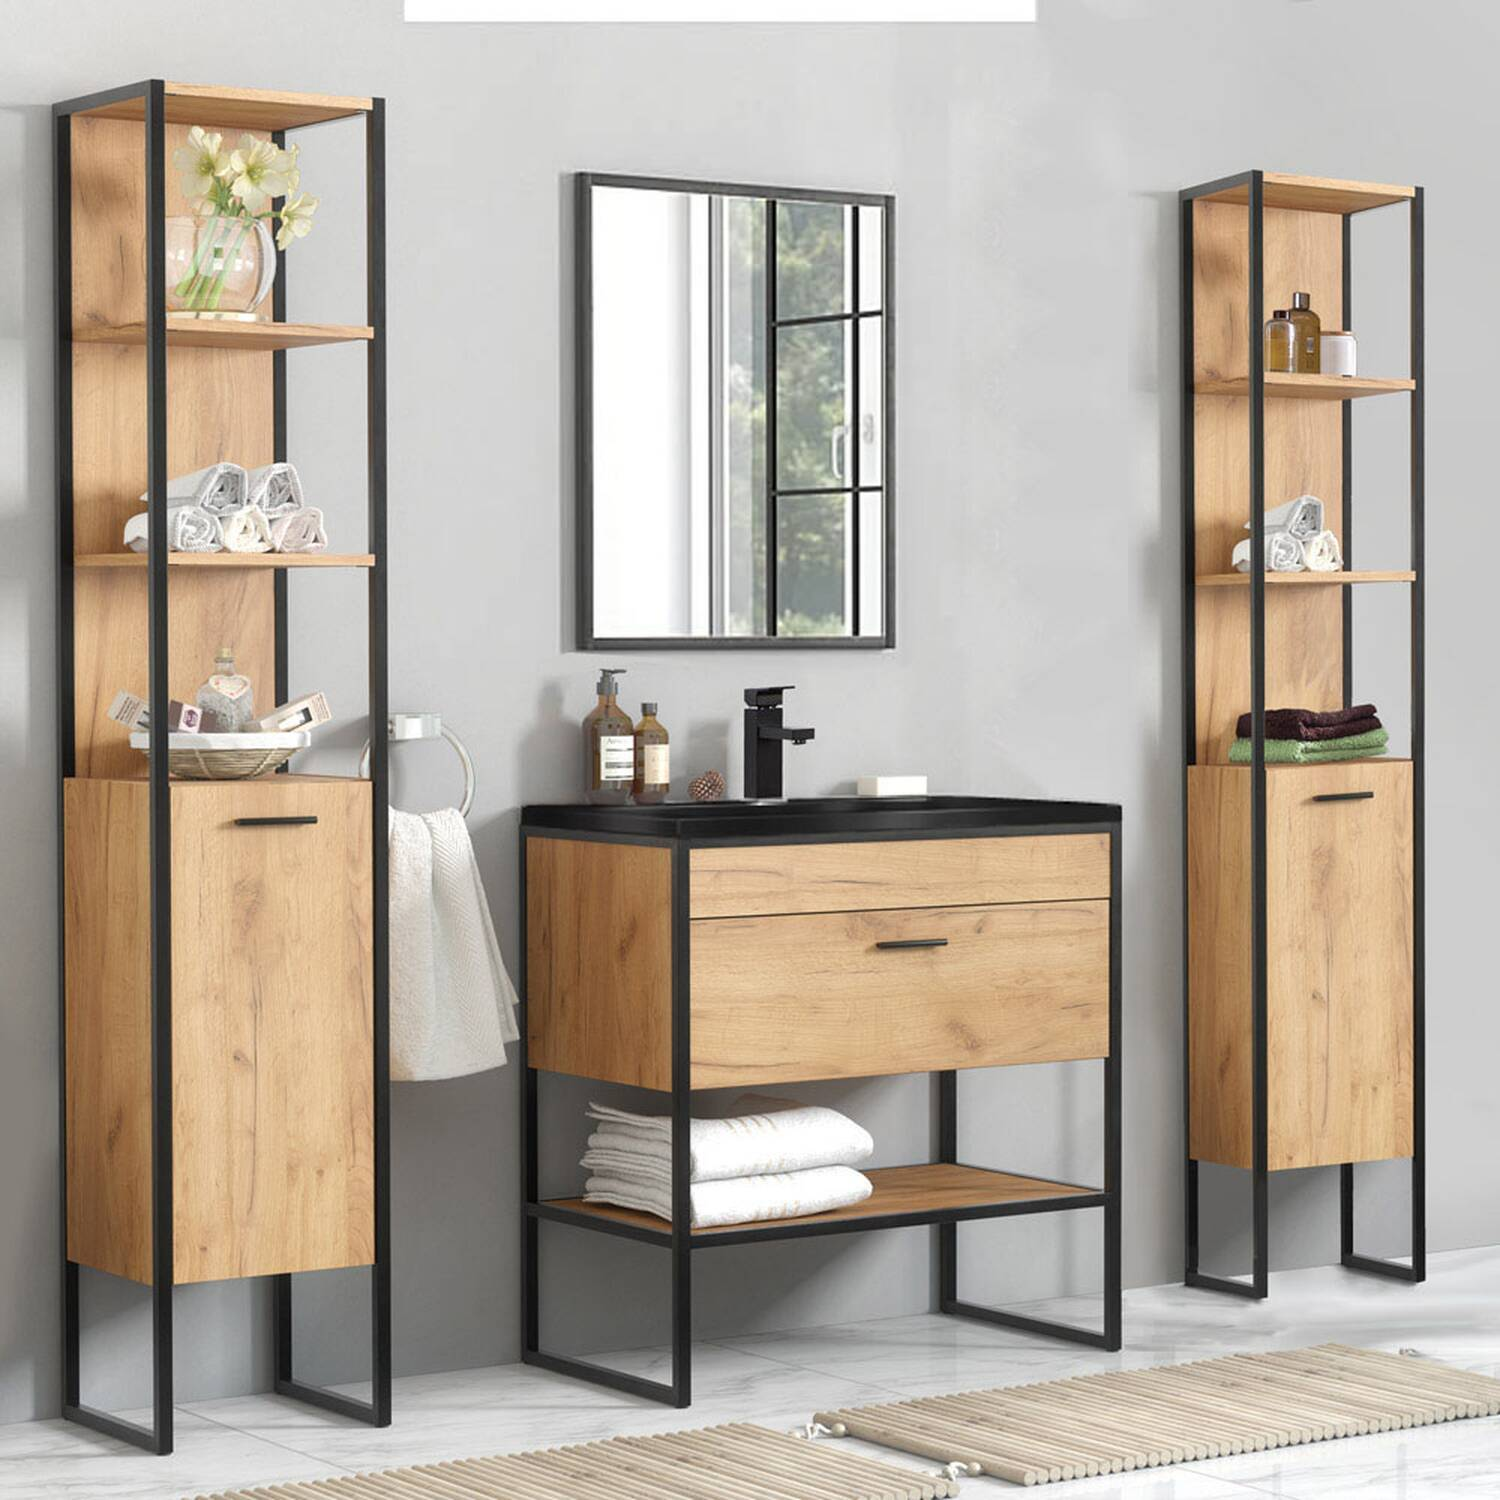 Badmöbel Set in Industrie-Design MANHATTAN-56 5-teilig Gold Craft Oak-Eiche B/H/T 190/185/46cm